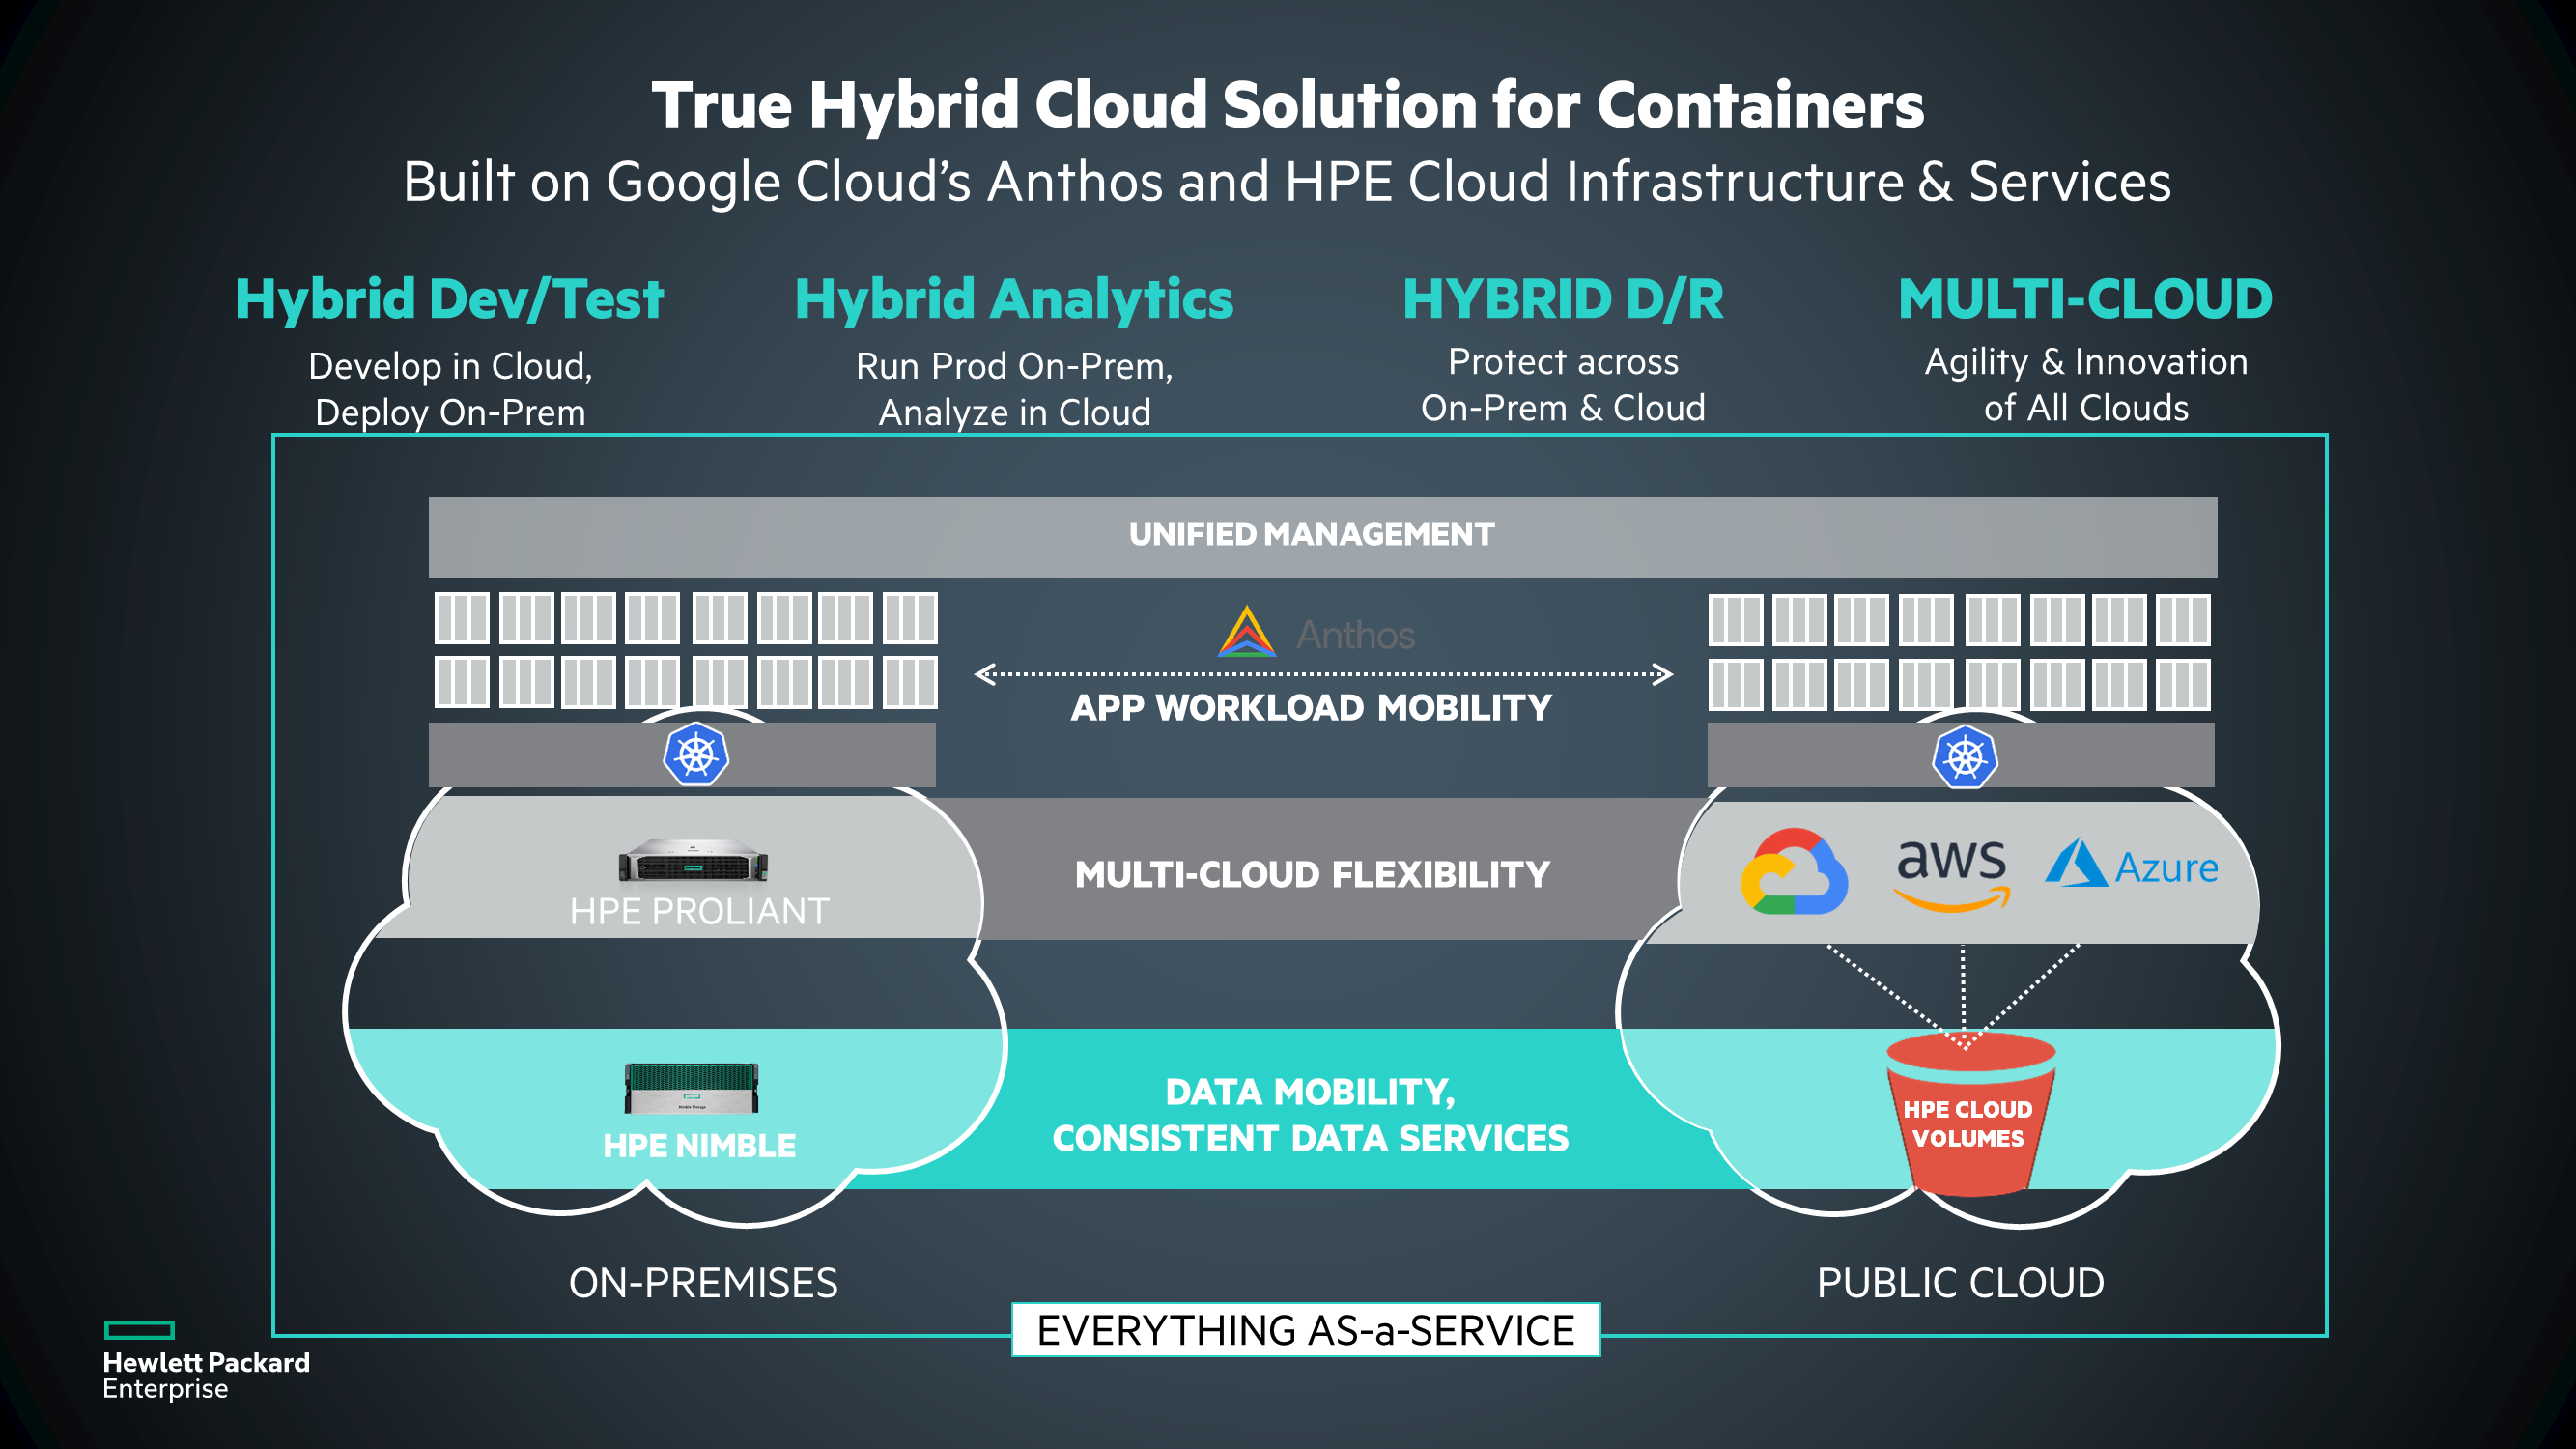 Introducing: True hybrid cloud for containers from HPE and Google